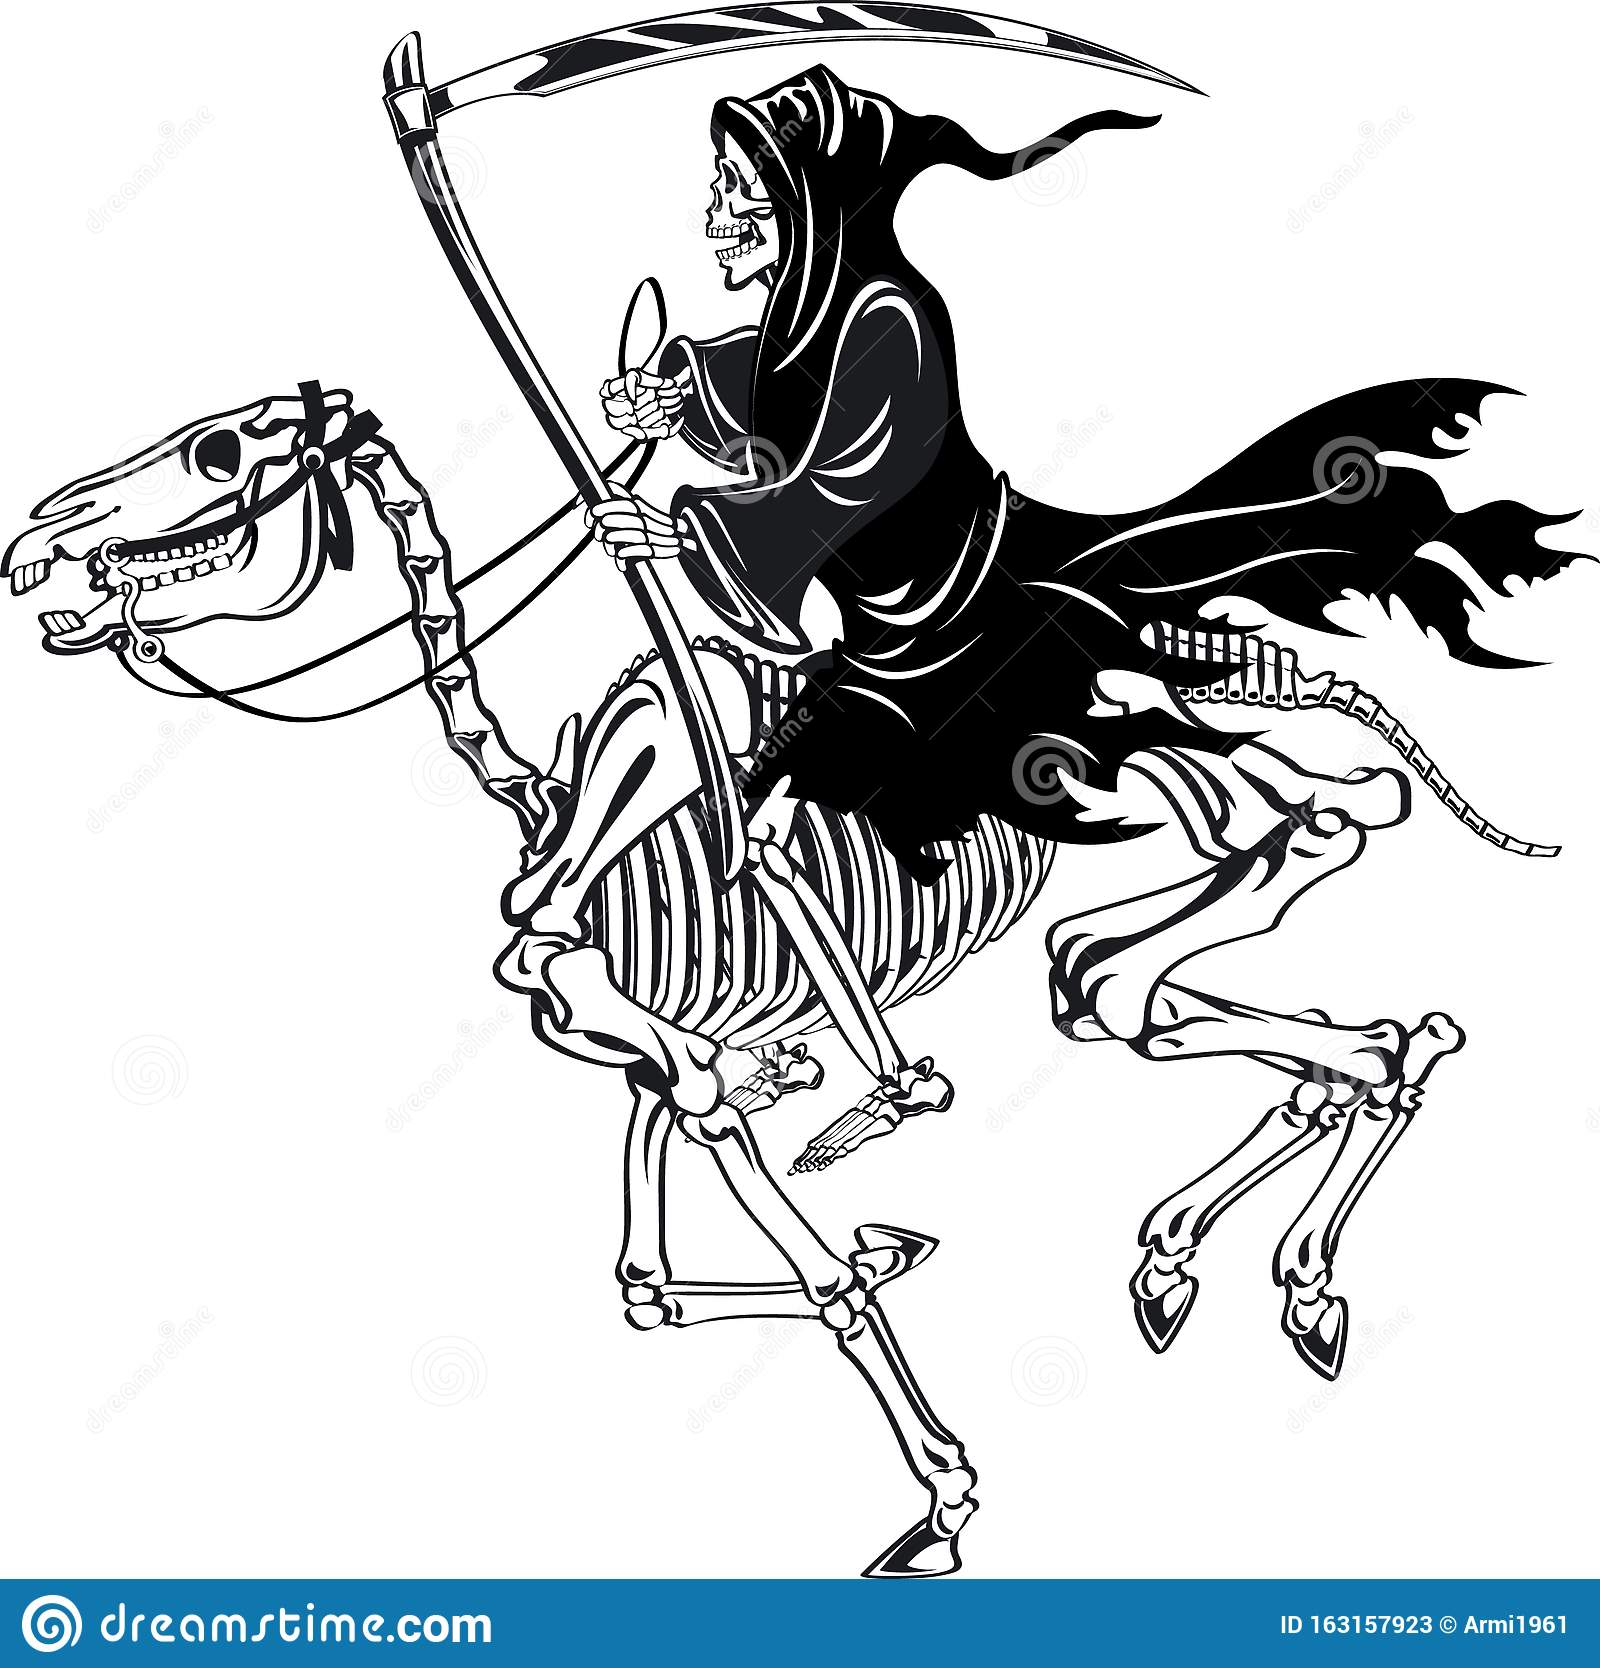 Horse Riding Skeleton Stock Illustrations 31 Horse Riding Skeleton Stock Illustrations Vectors Clipart Dreamstime